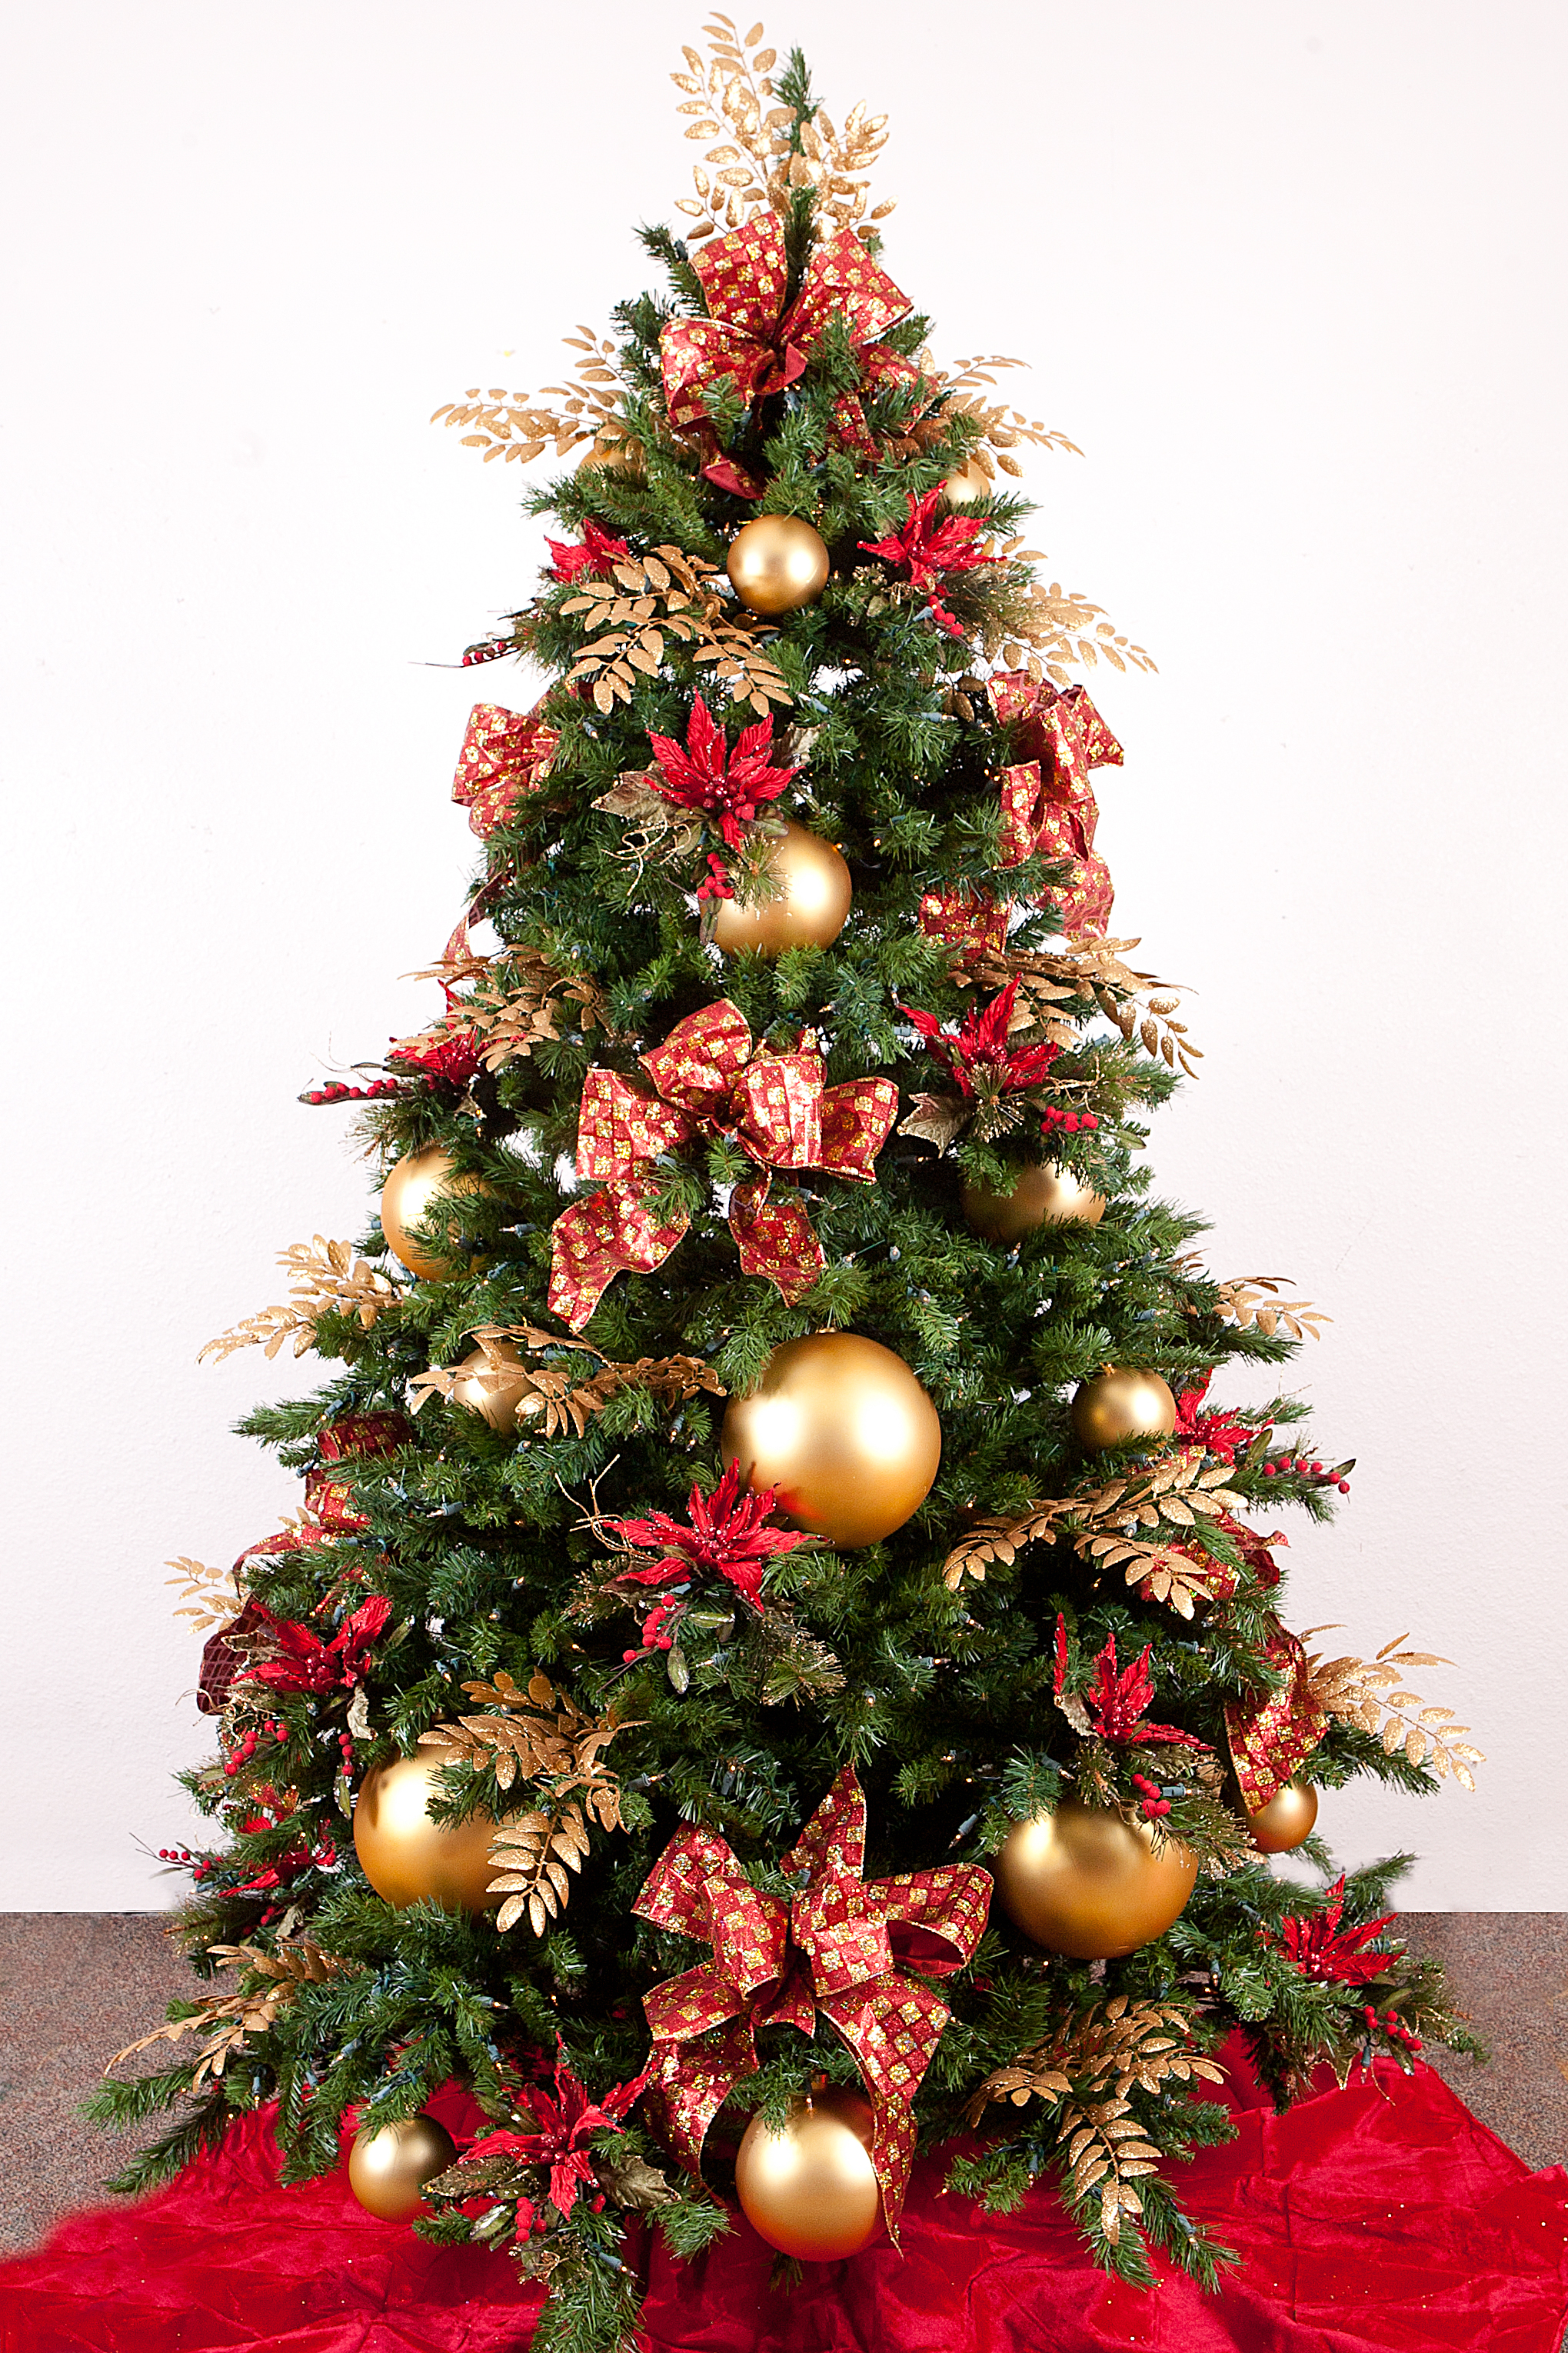 Christmas Tree Decorations Habitat : Christmas tree ideas show me decorating